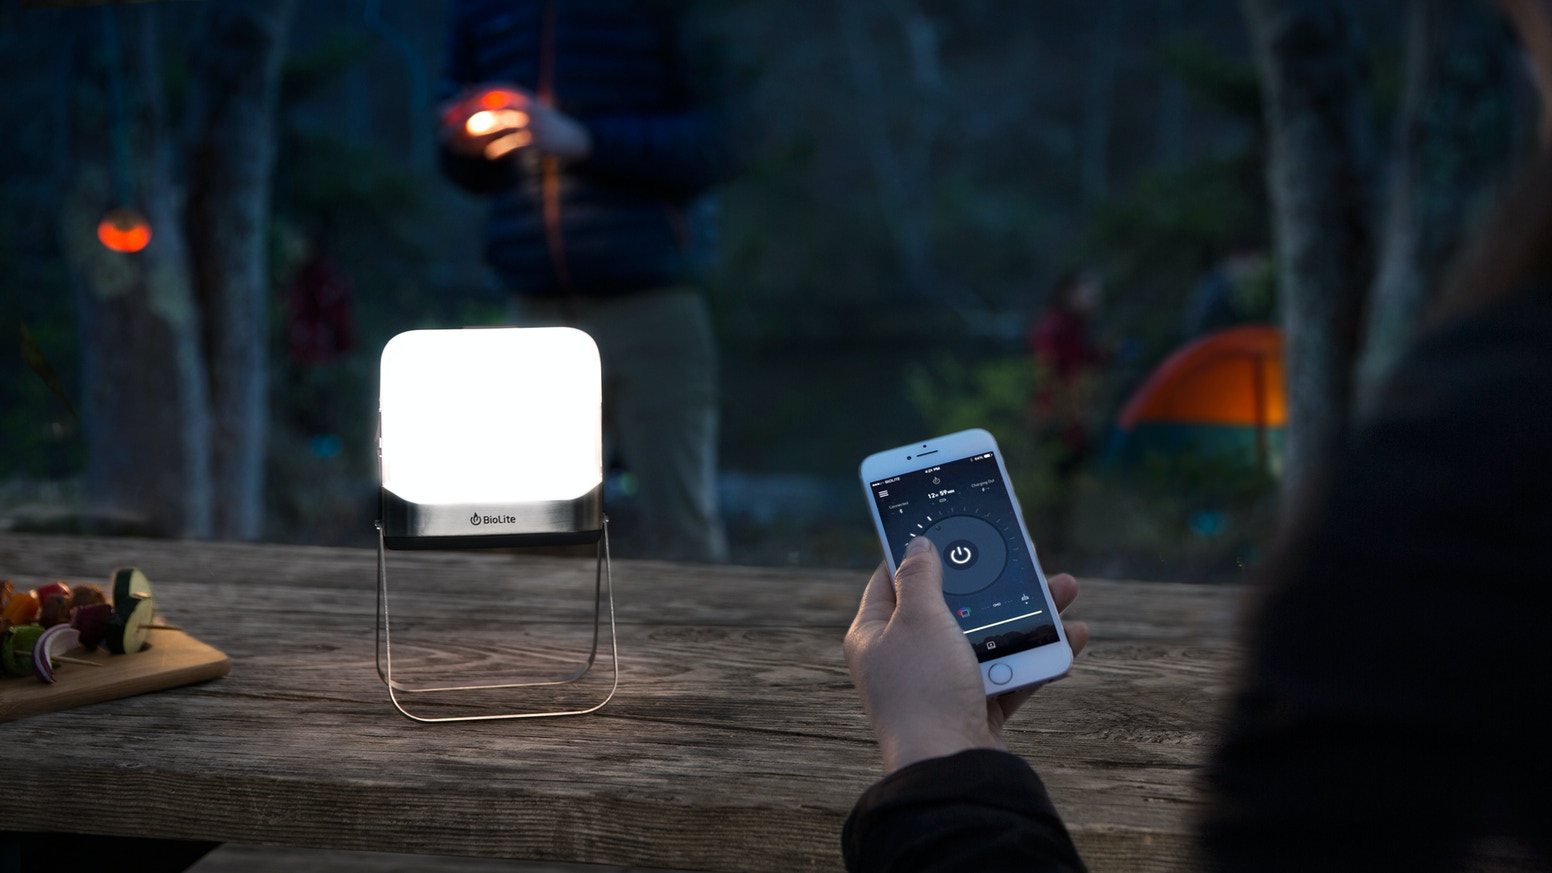 Experience big light, shareable energy, and smarter control with the world's first connected flatpack lantern.